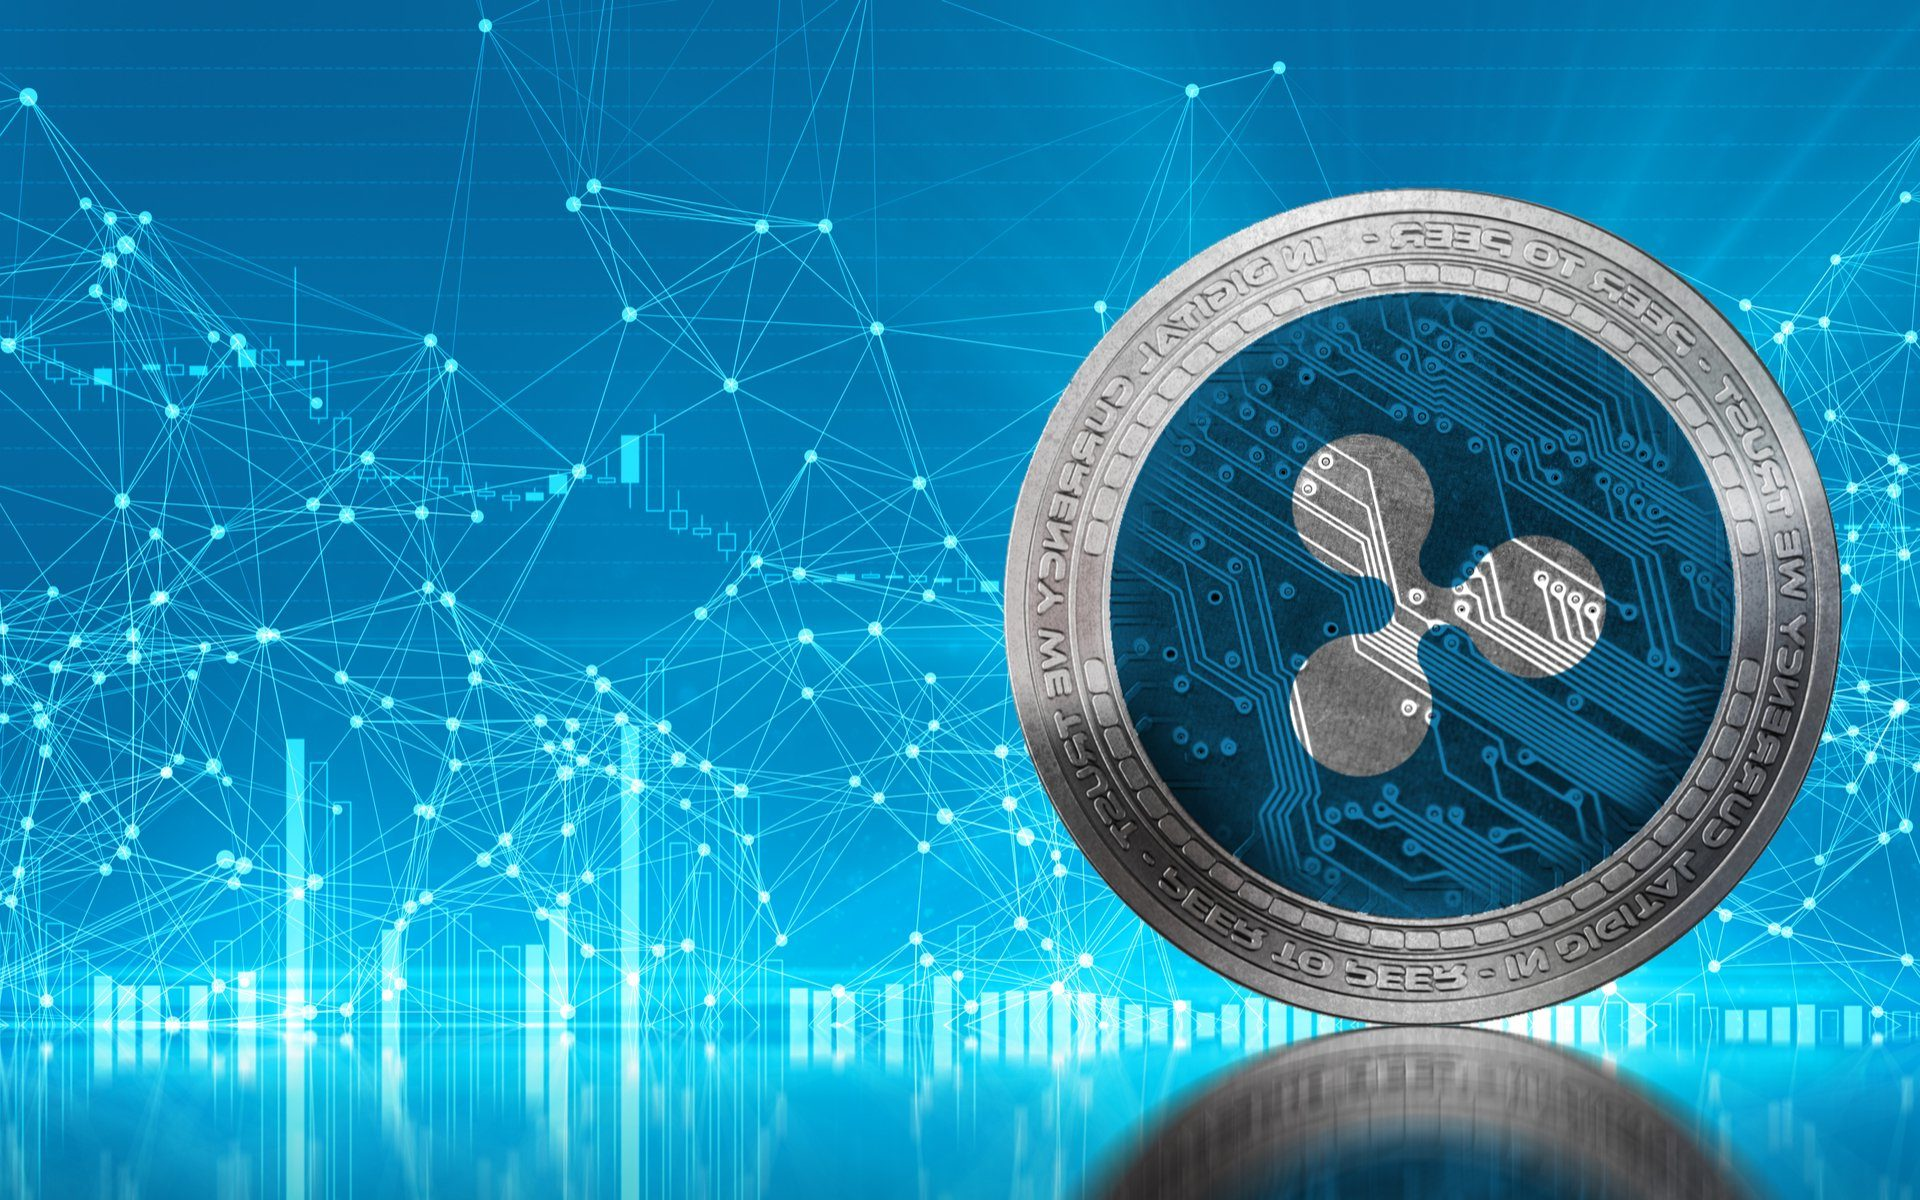 Ripple review_besticoforyou news